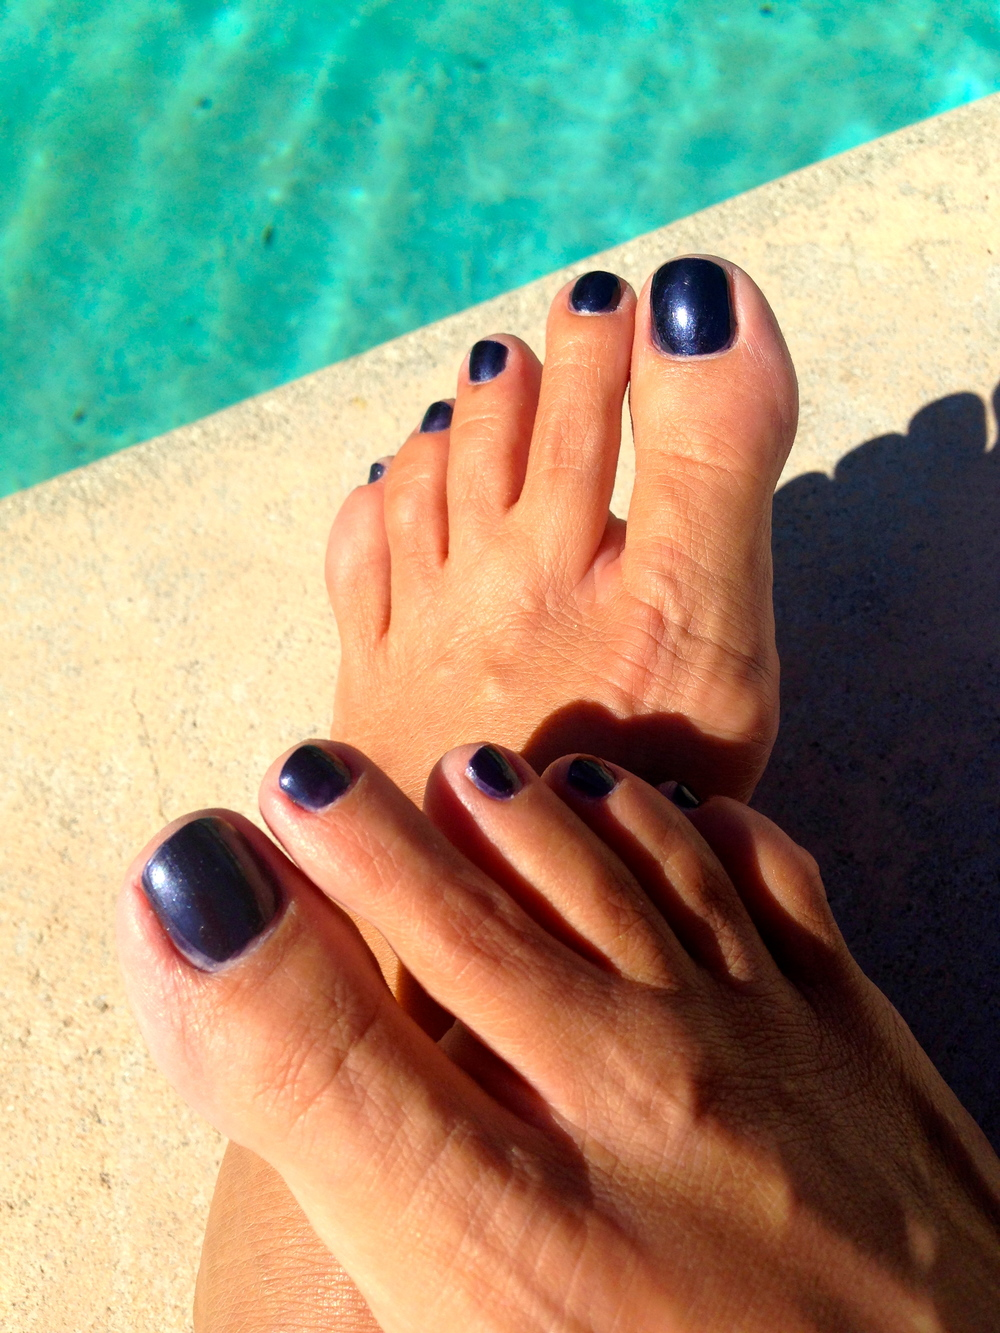 I love c ô te shade  No. 76 (midnight blue) on the toes!